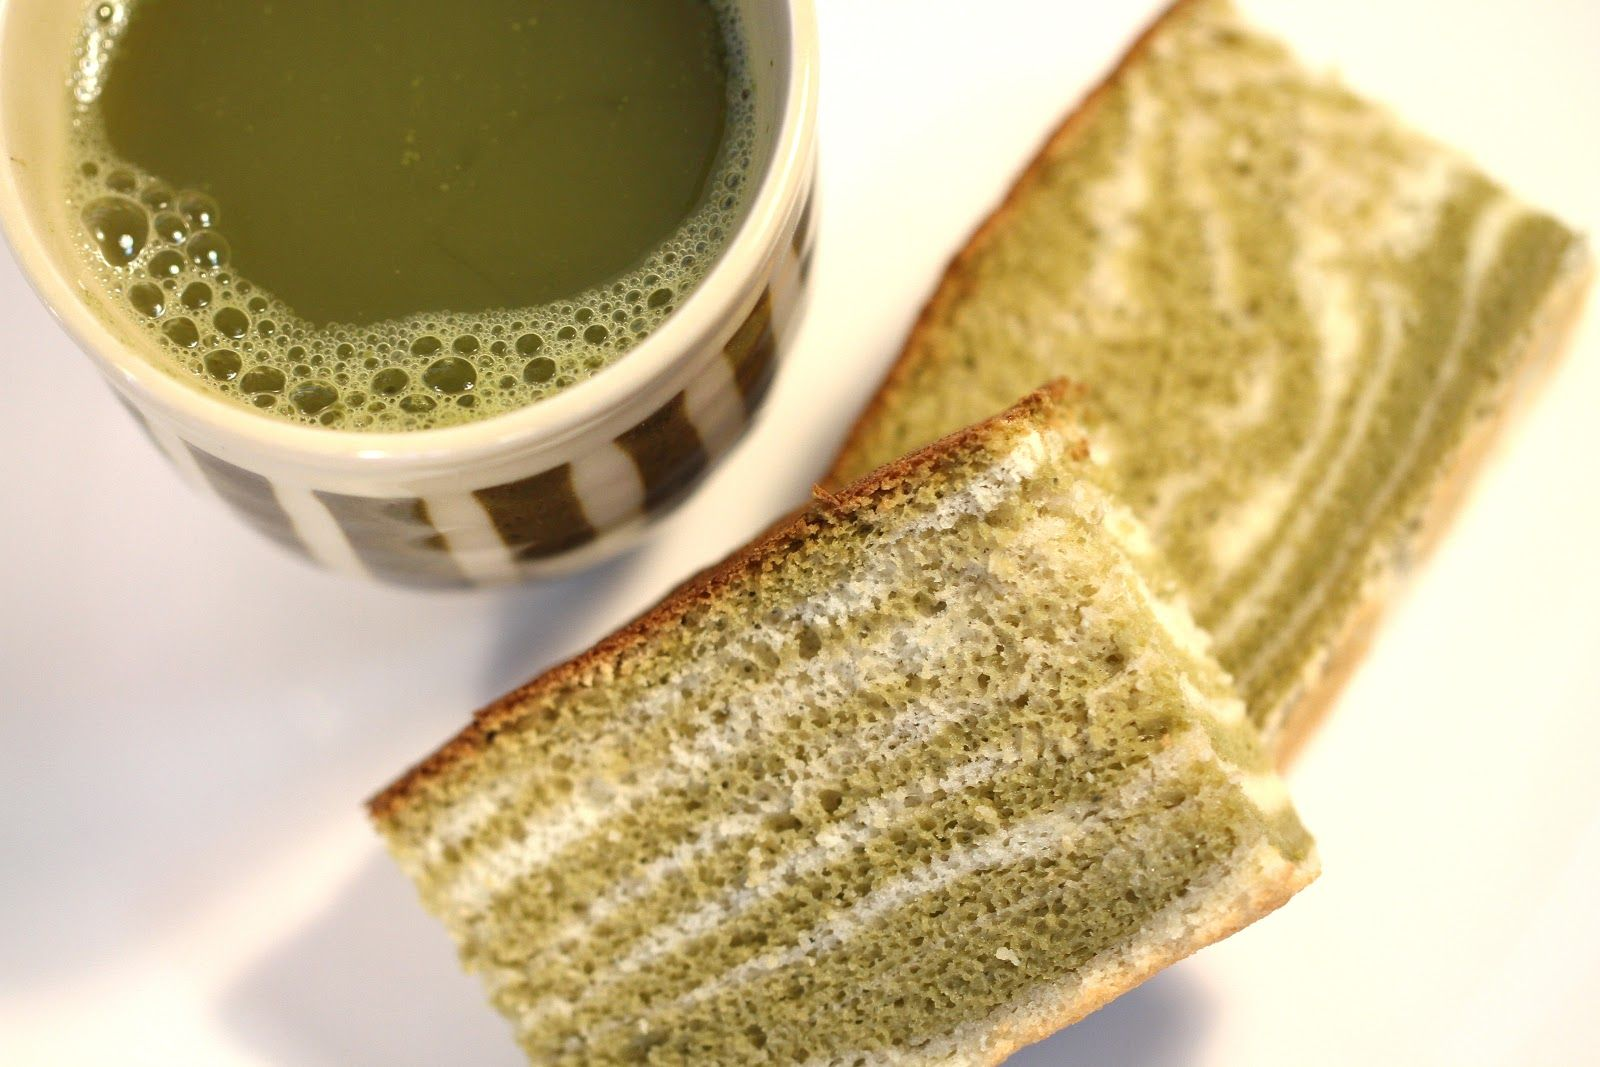 Japanese Sponge Cake Recipe Youtube: Green Tea Castella (Kasutera) Marble Or Zebra Japanese